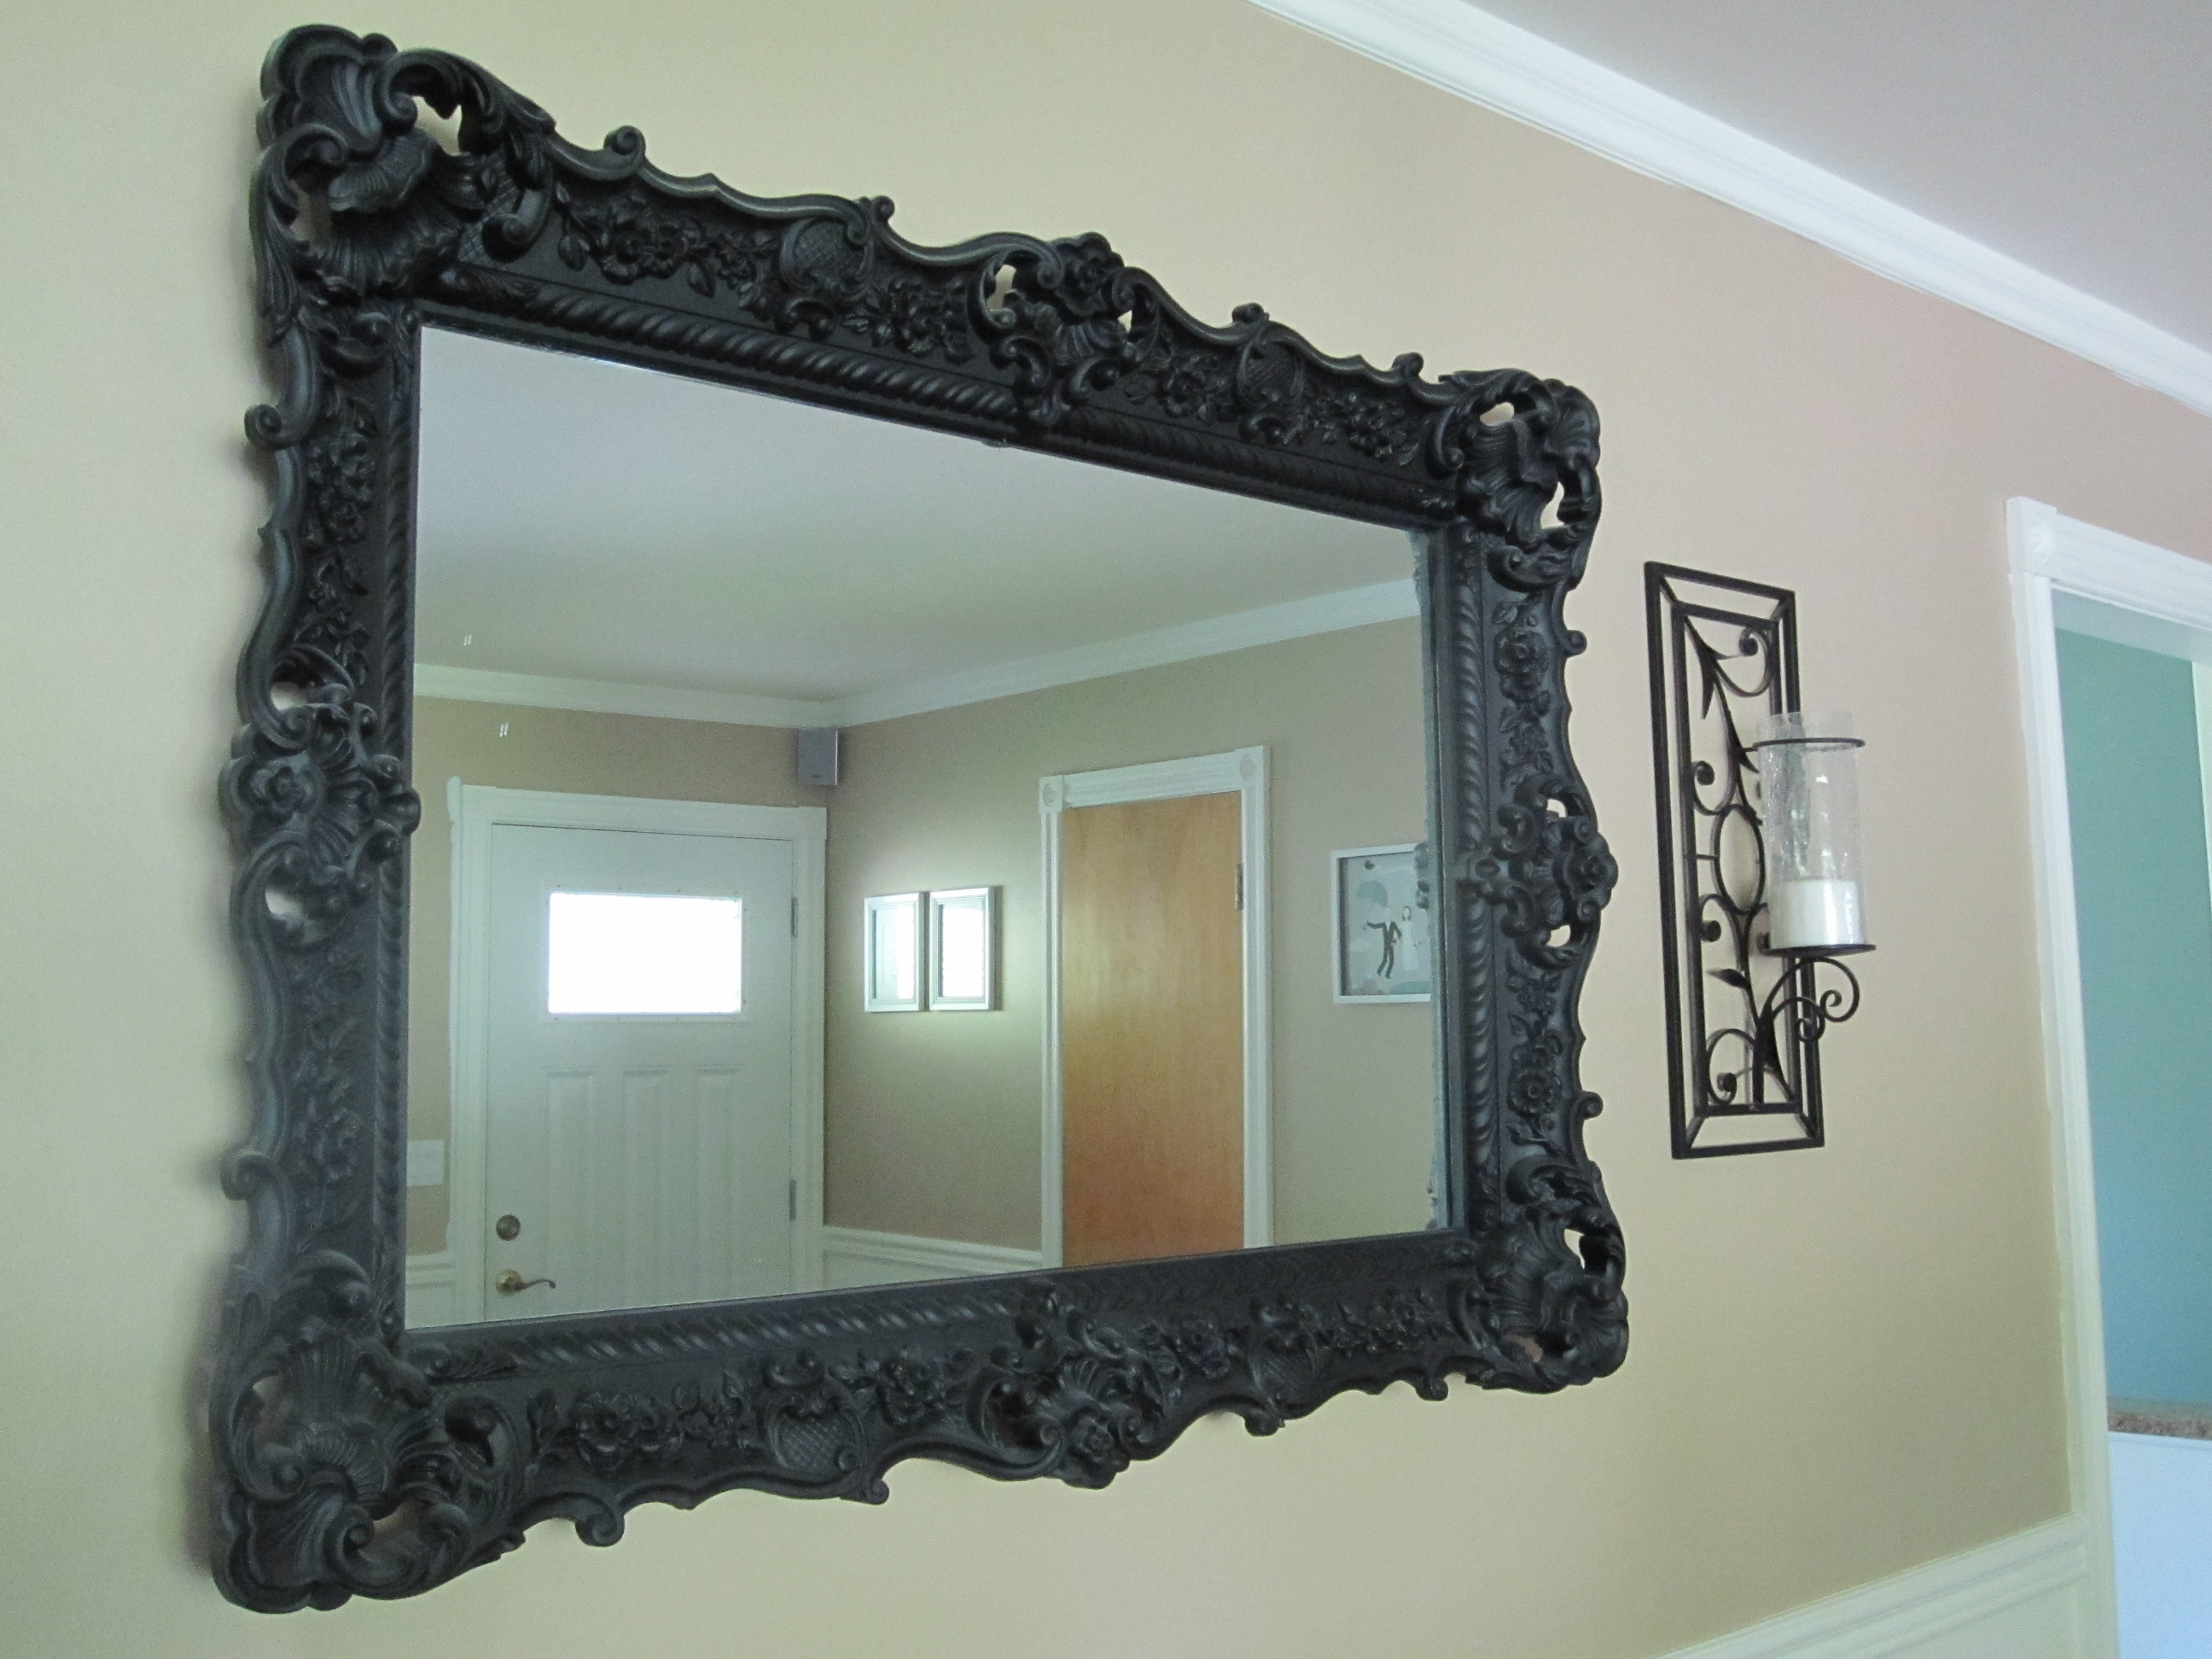 Big Mirrors For Sale 38 Cool Ideas For Mirror Harpsoundsco Intended For Large Black Mirrors (Image 2 of 15)